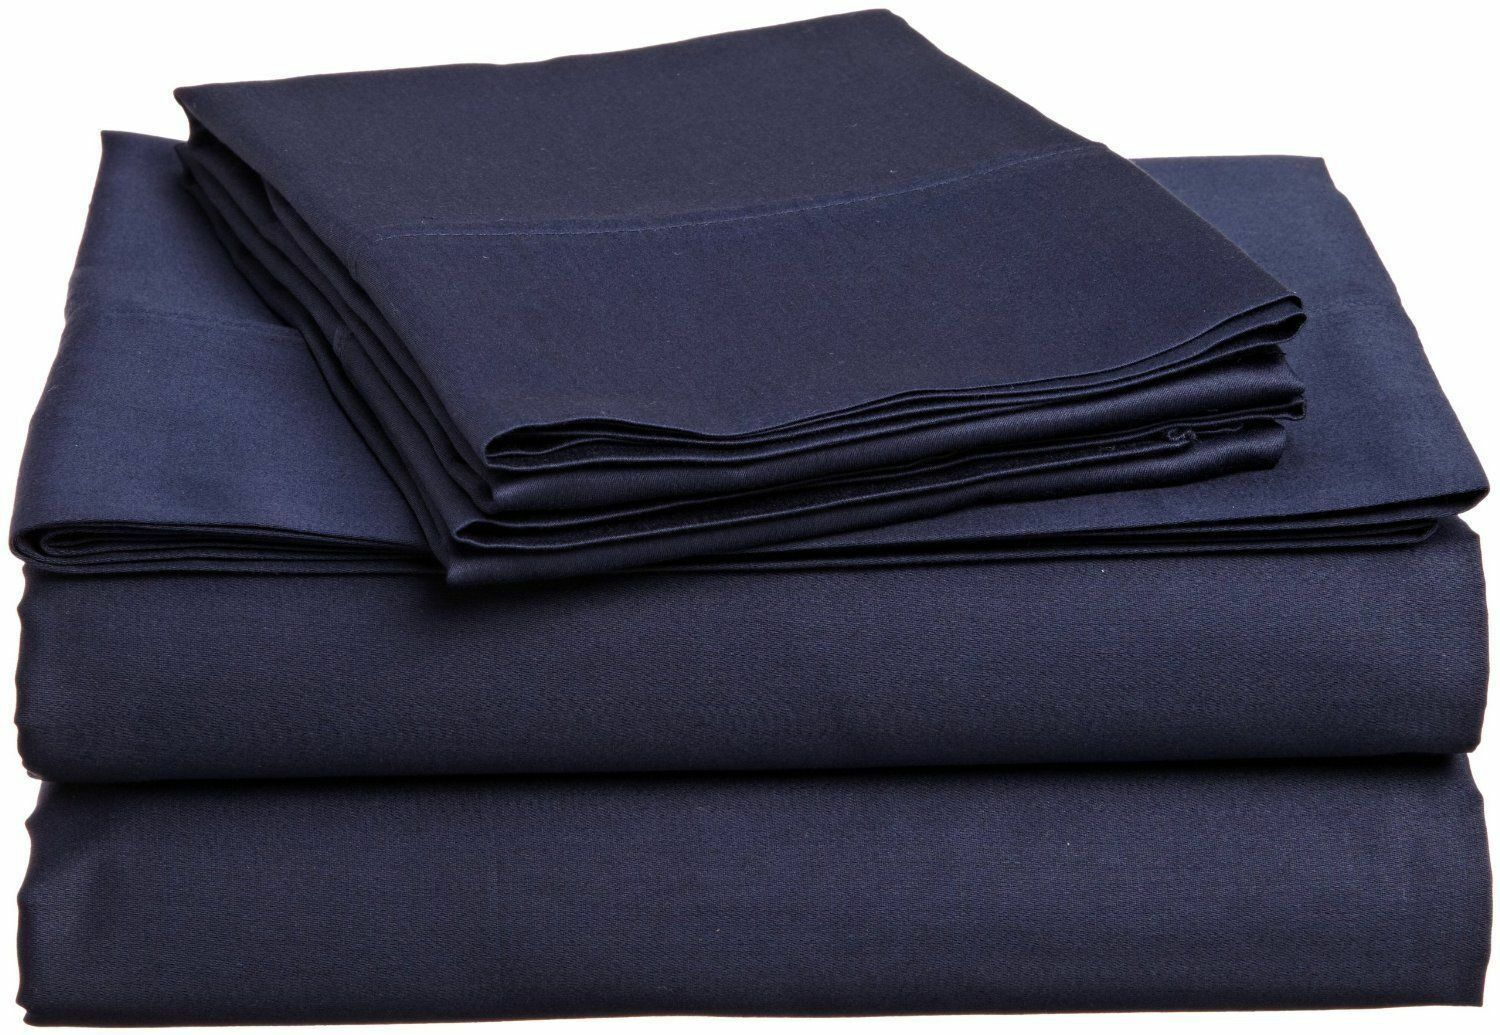 Elastic All Around Fits Fitted Sheet Navy Blau Solid All Deep Pkt & Größes 1000TC